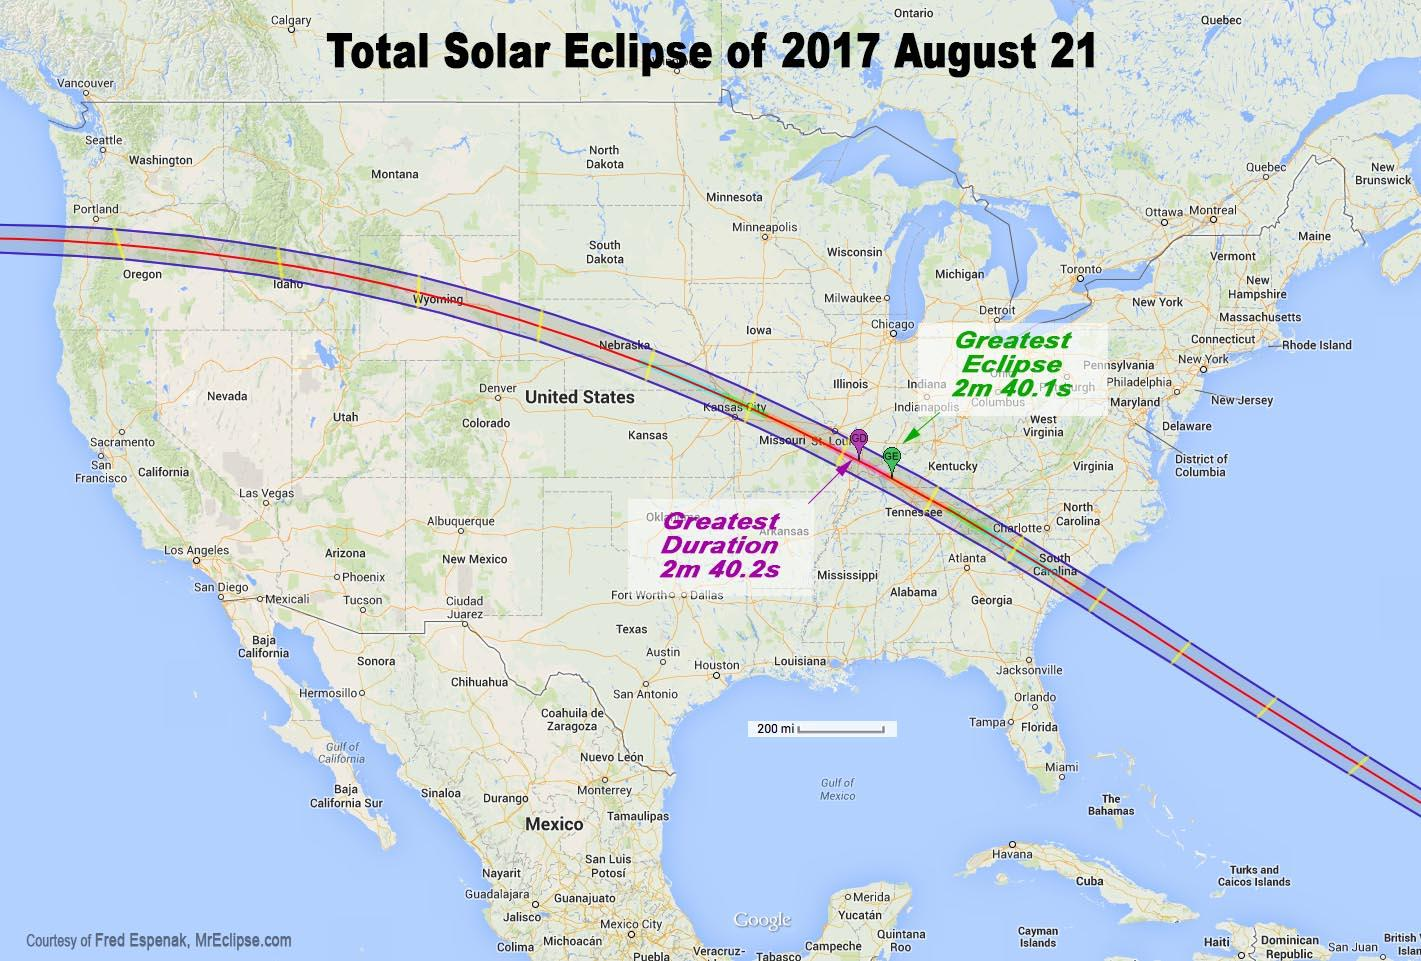 NASA says unsafe eclipse glasses being distributed